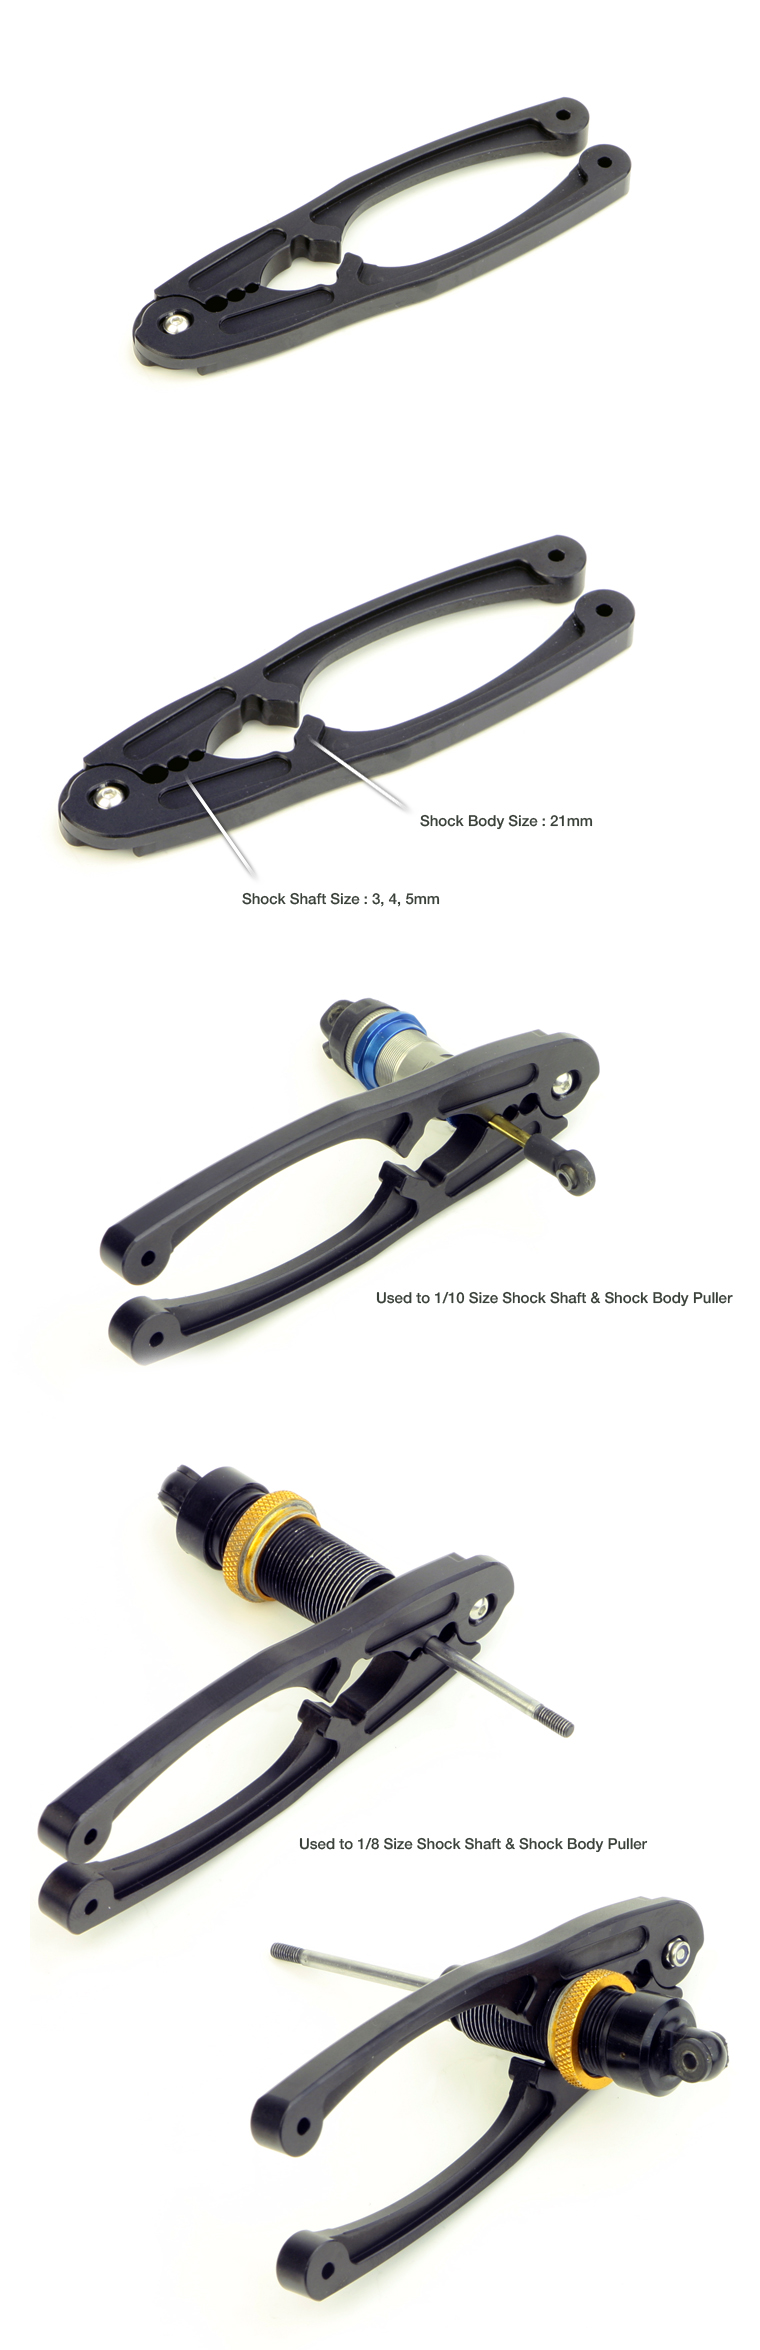 MR-MSMT Multi Shock Maintenance Tool (Shock Shaft & Shock